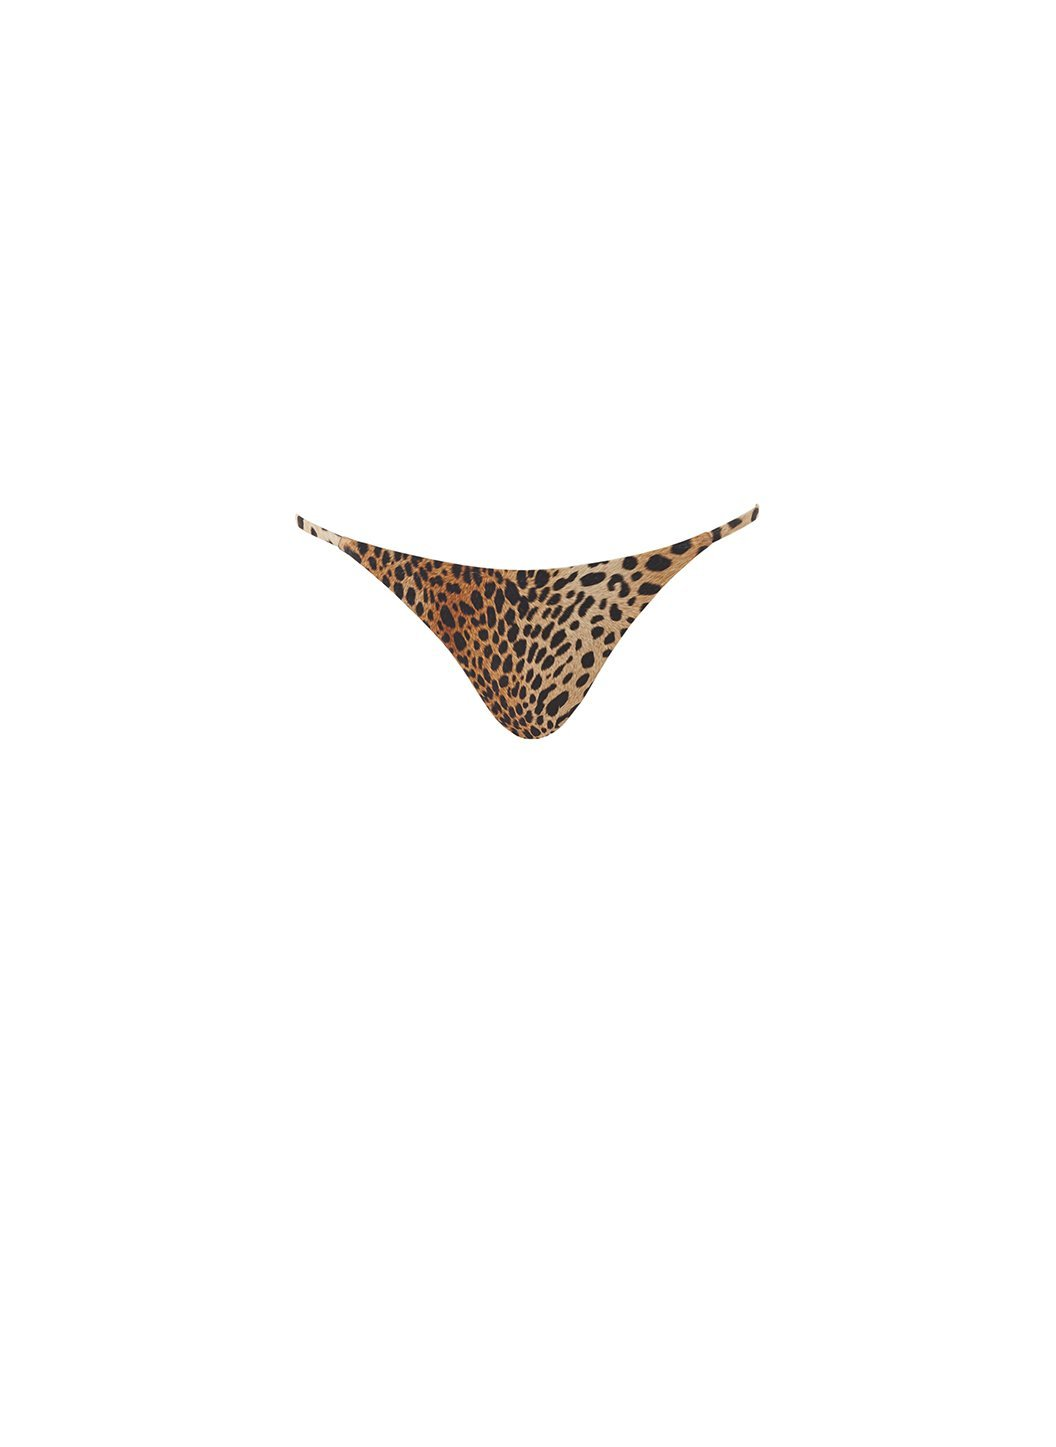 exclusive sttropez high leg bikini bottoms cheetah 2019